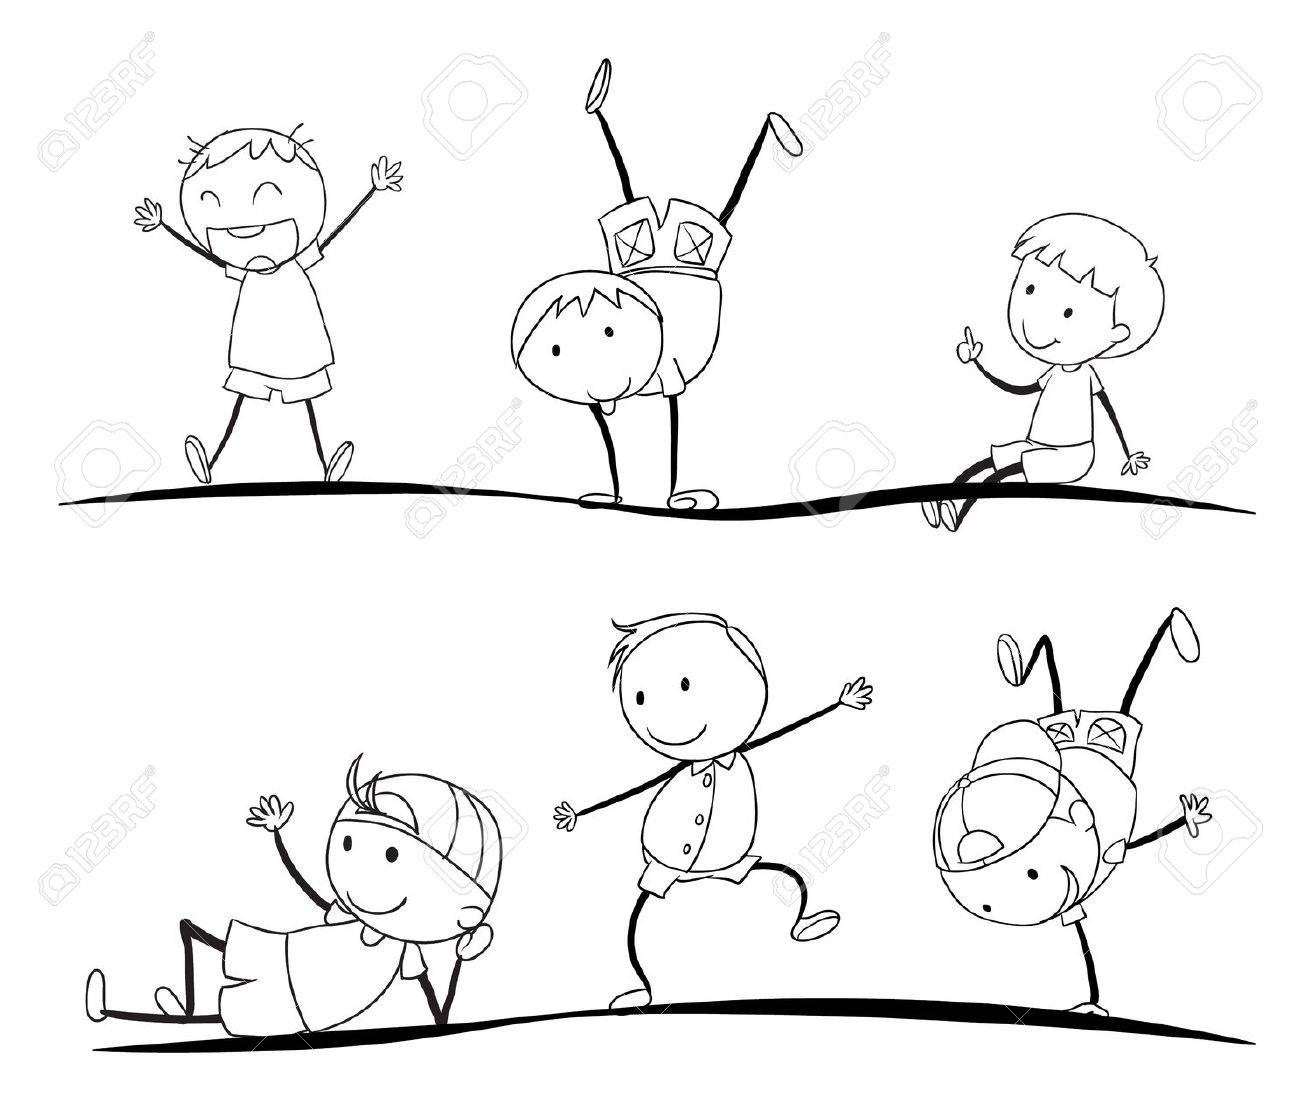 vector illustration of kids sketches on a white background - Kids Drawing Sketches